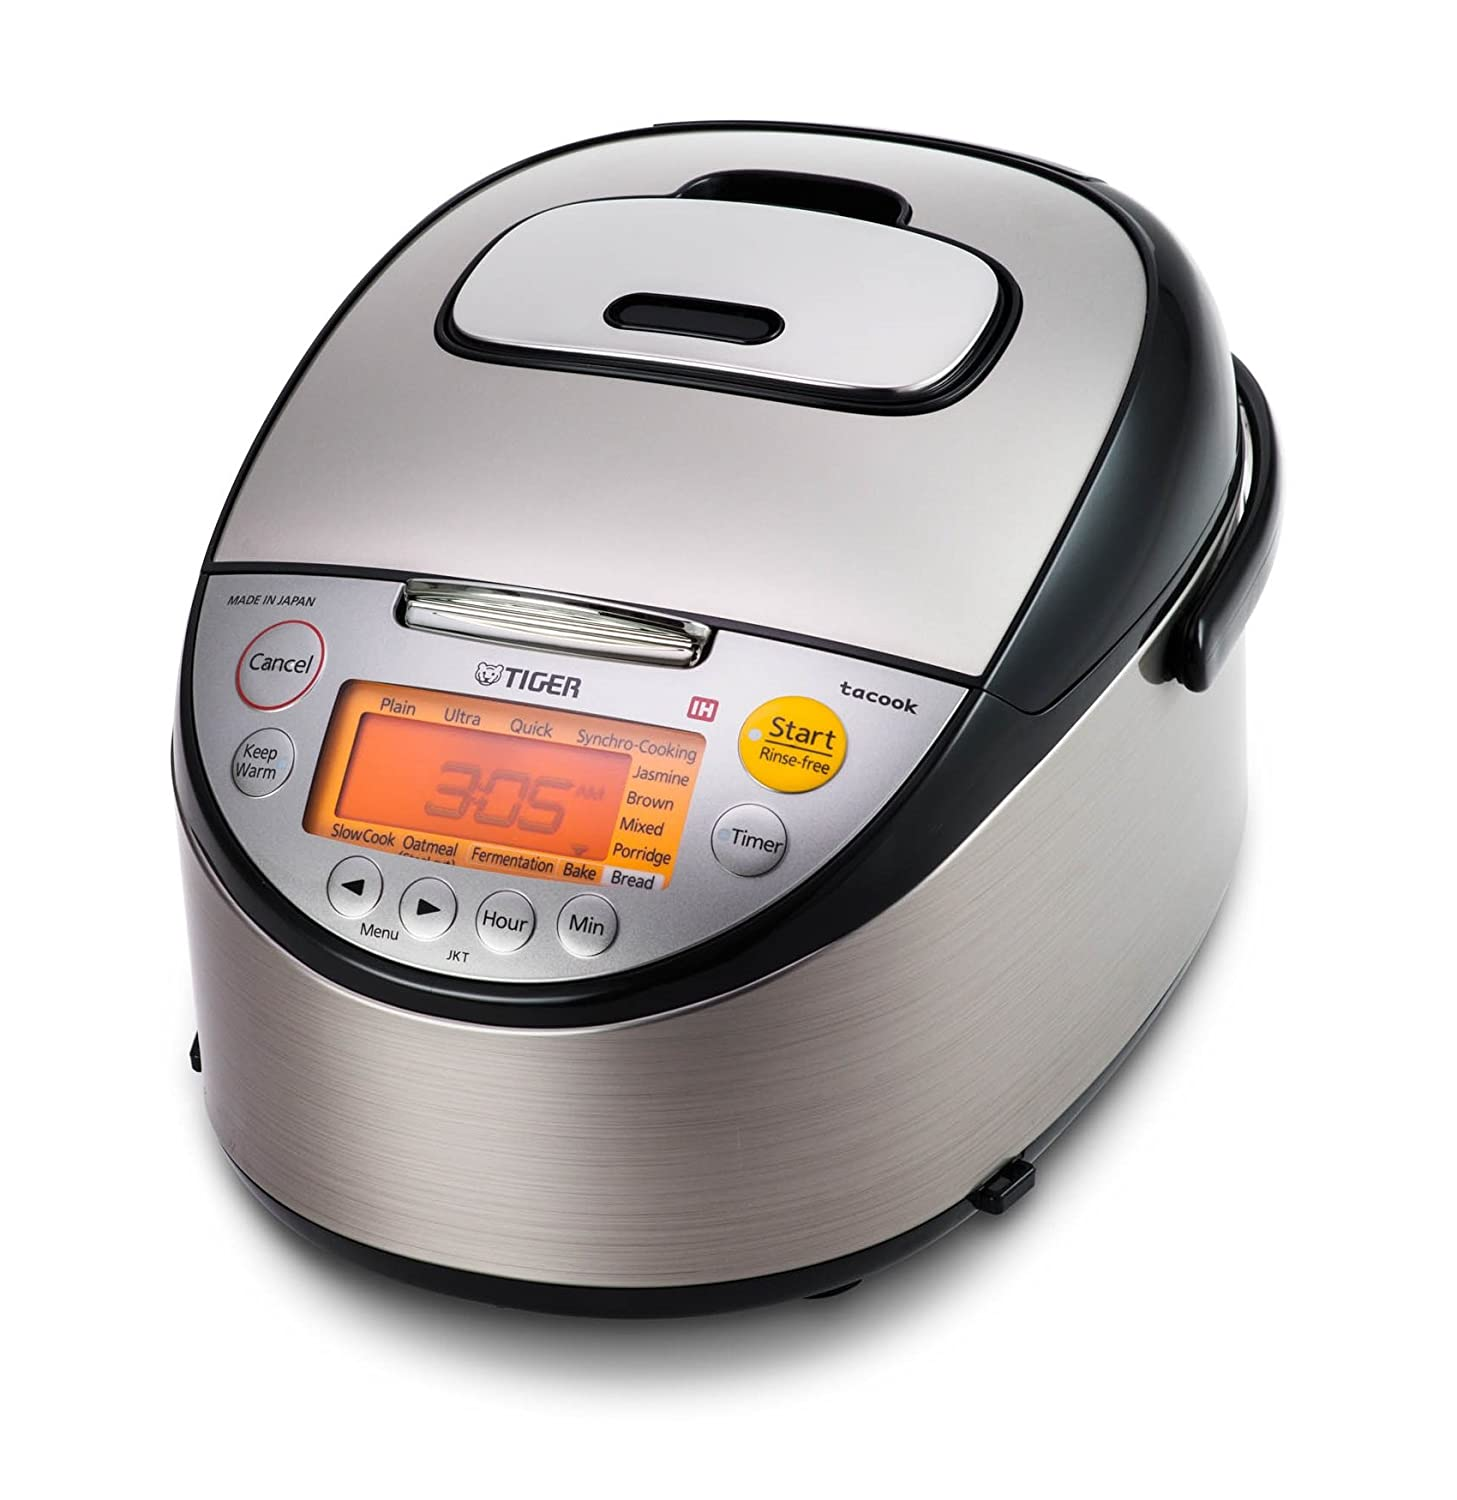 charming Tiger Kitchen Appliances #9: Amazon.com: Tiger JKT-S10U-K IH Rice Cooker with Slow Cooker and Bread  Maker Stainless Steel, Black 5.5-Cup: Kitchen u0026 Dining